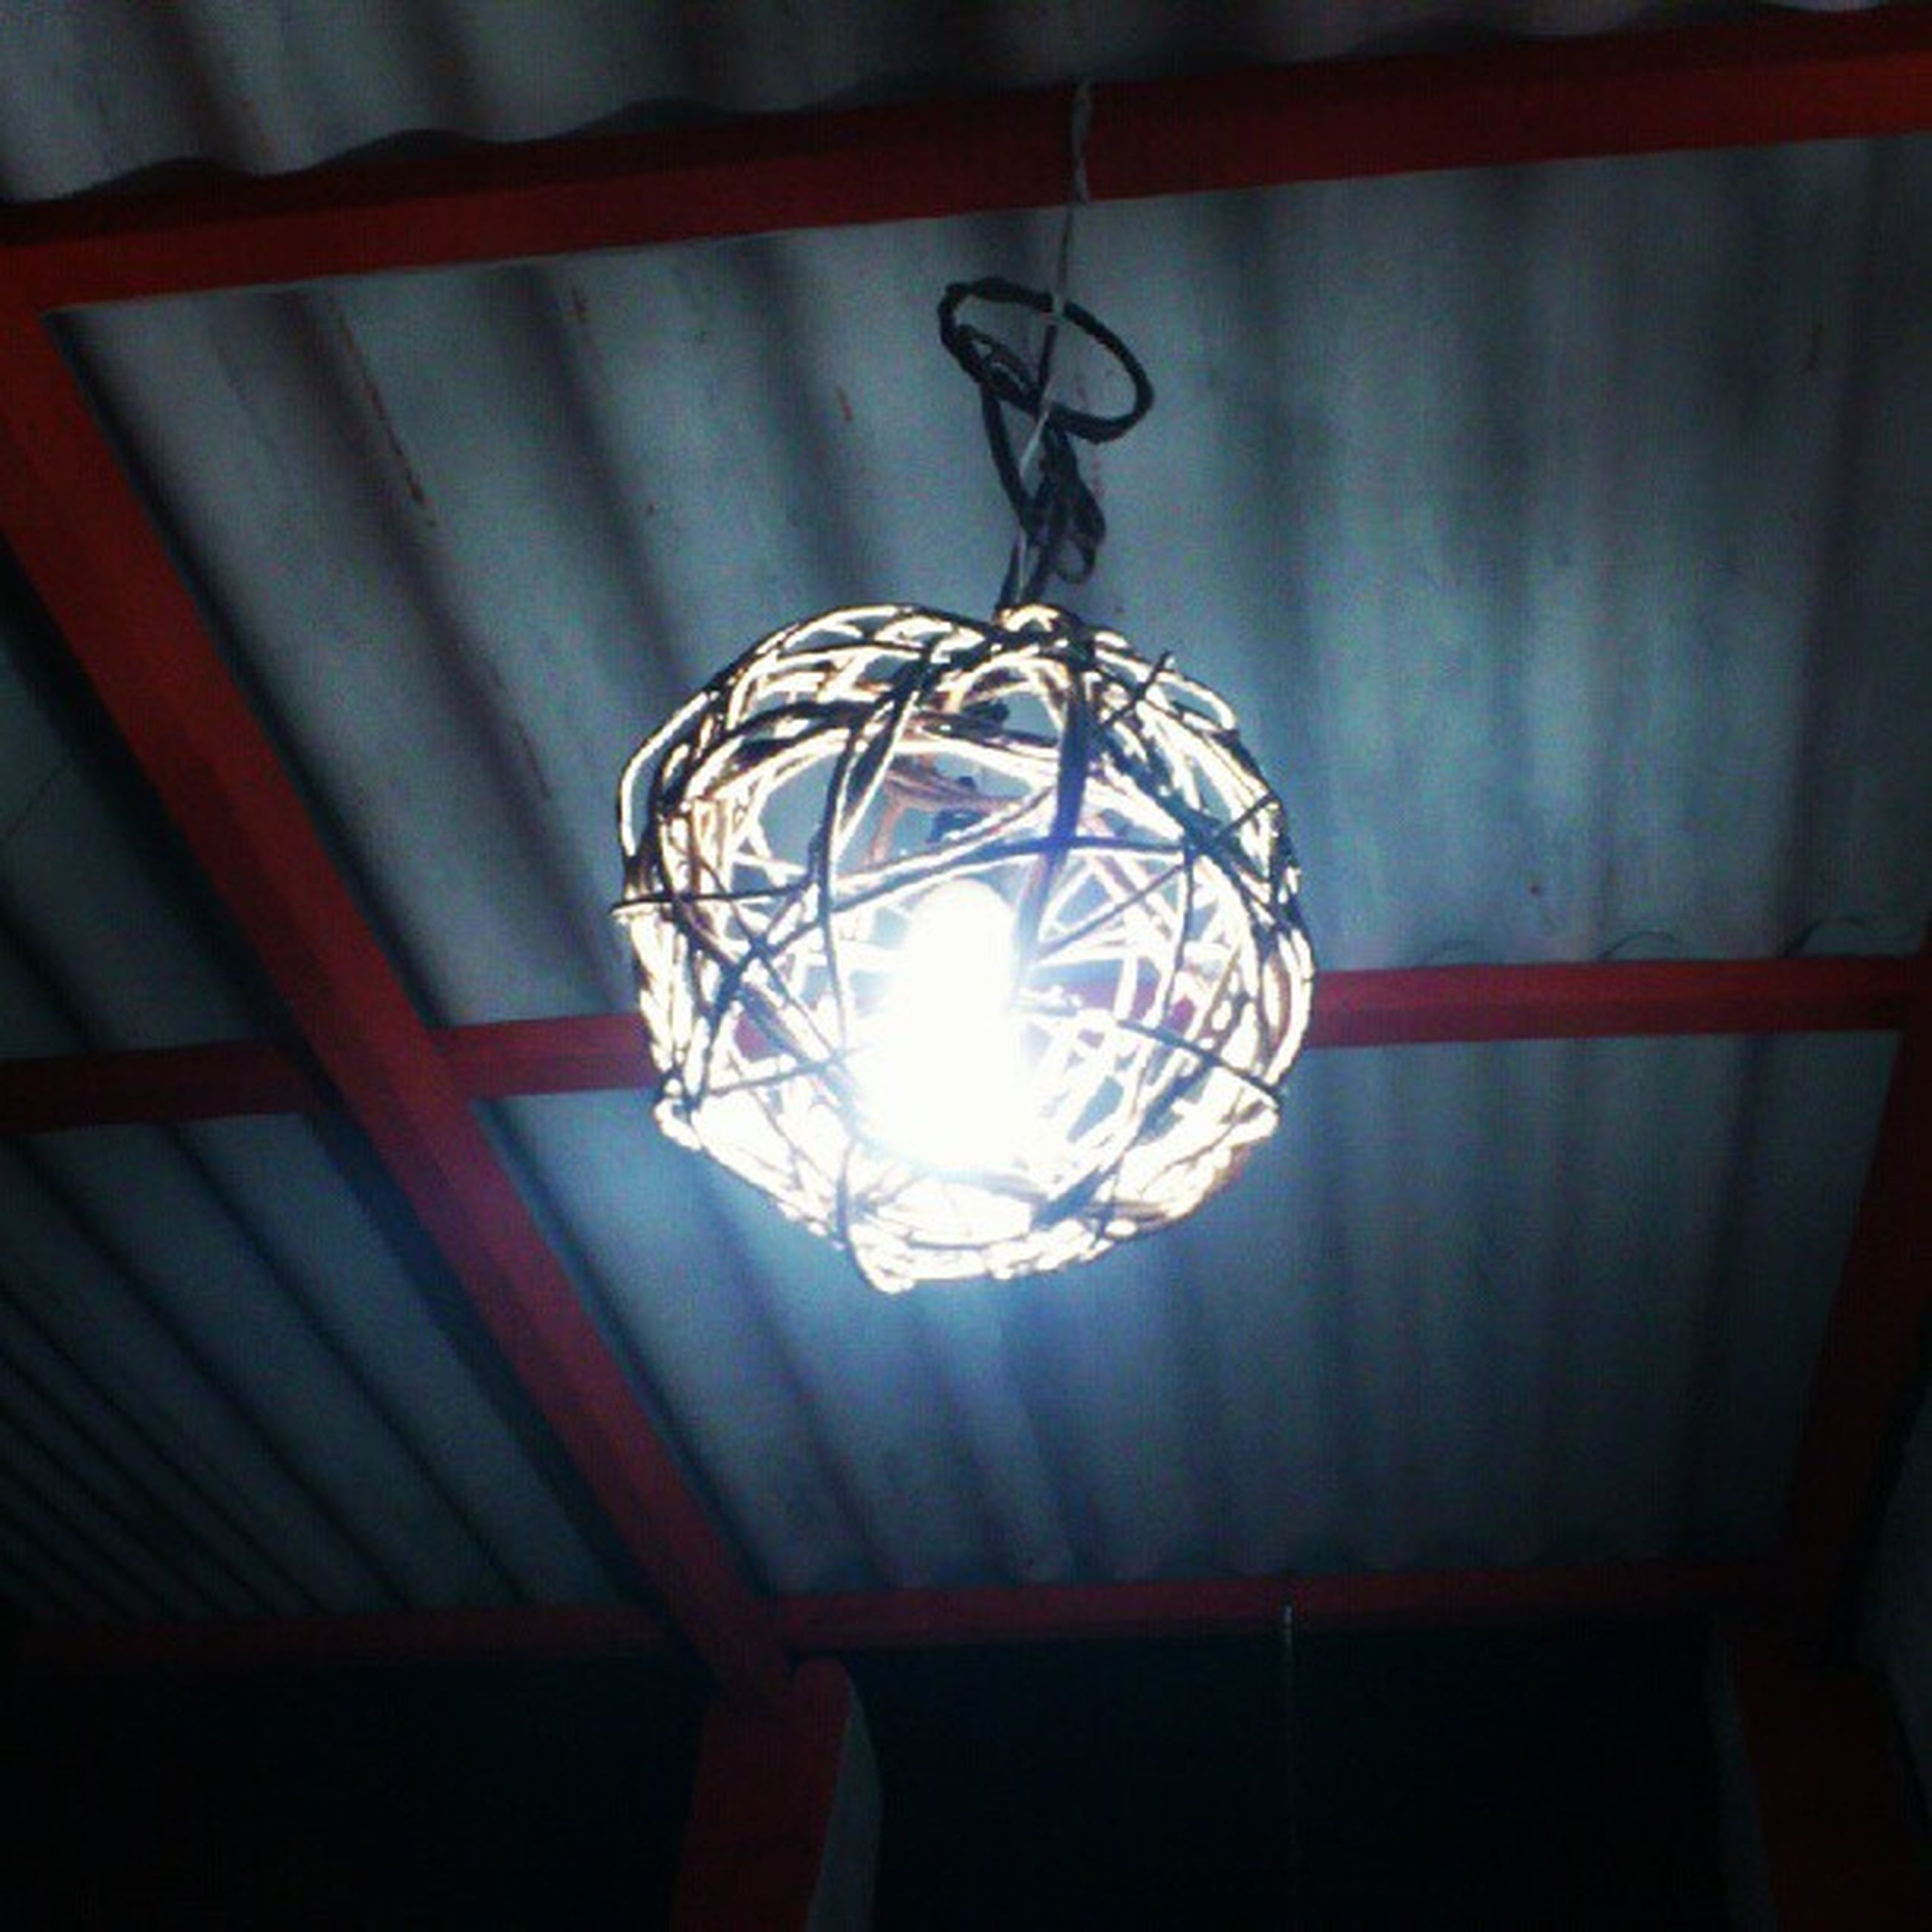 indoors, lighting equipment, ceiling, illuminated, hanging, electricity, light bulb, electric lamp, chandelier, electric light, decoration, low angle view, home interior, light - natural phenomenon, glowing, decor, pendant light, light, lamp, design